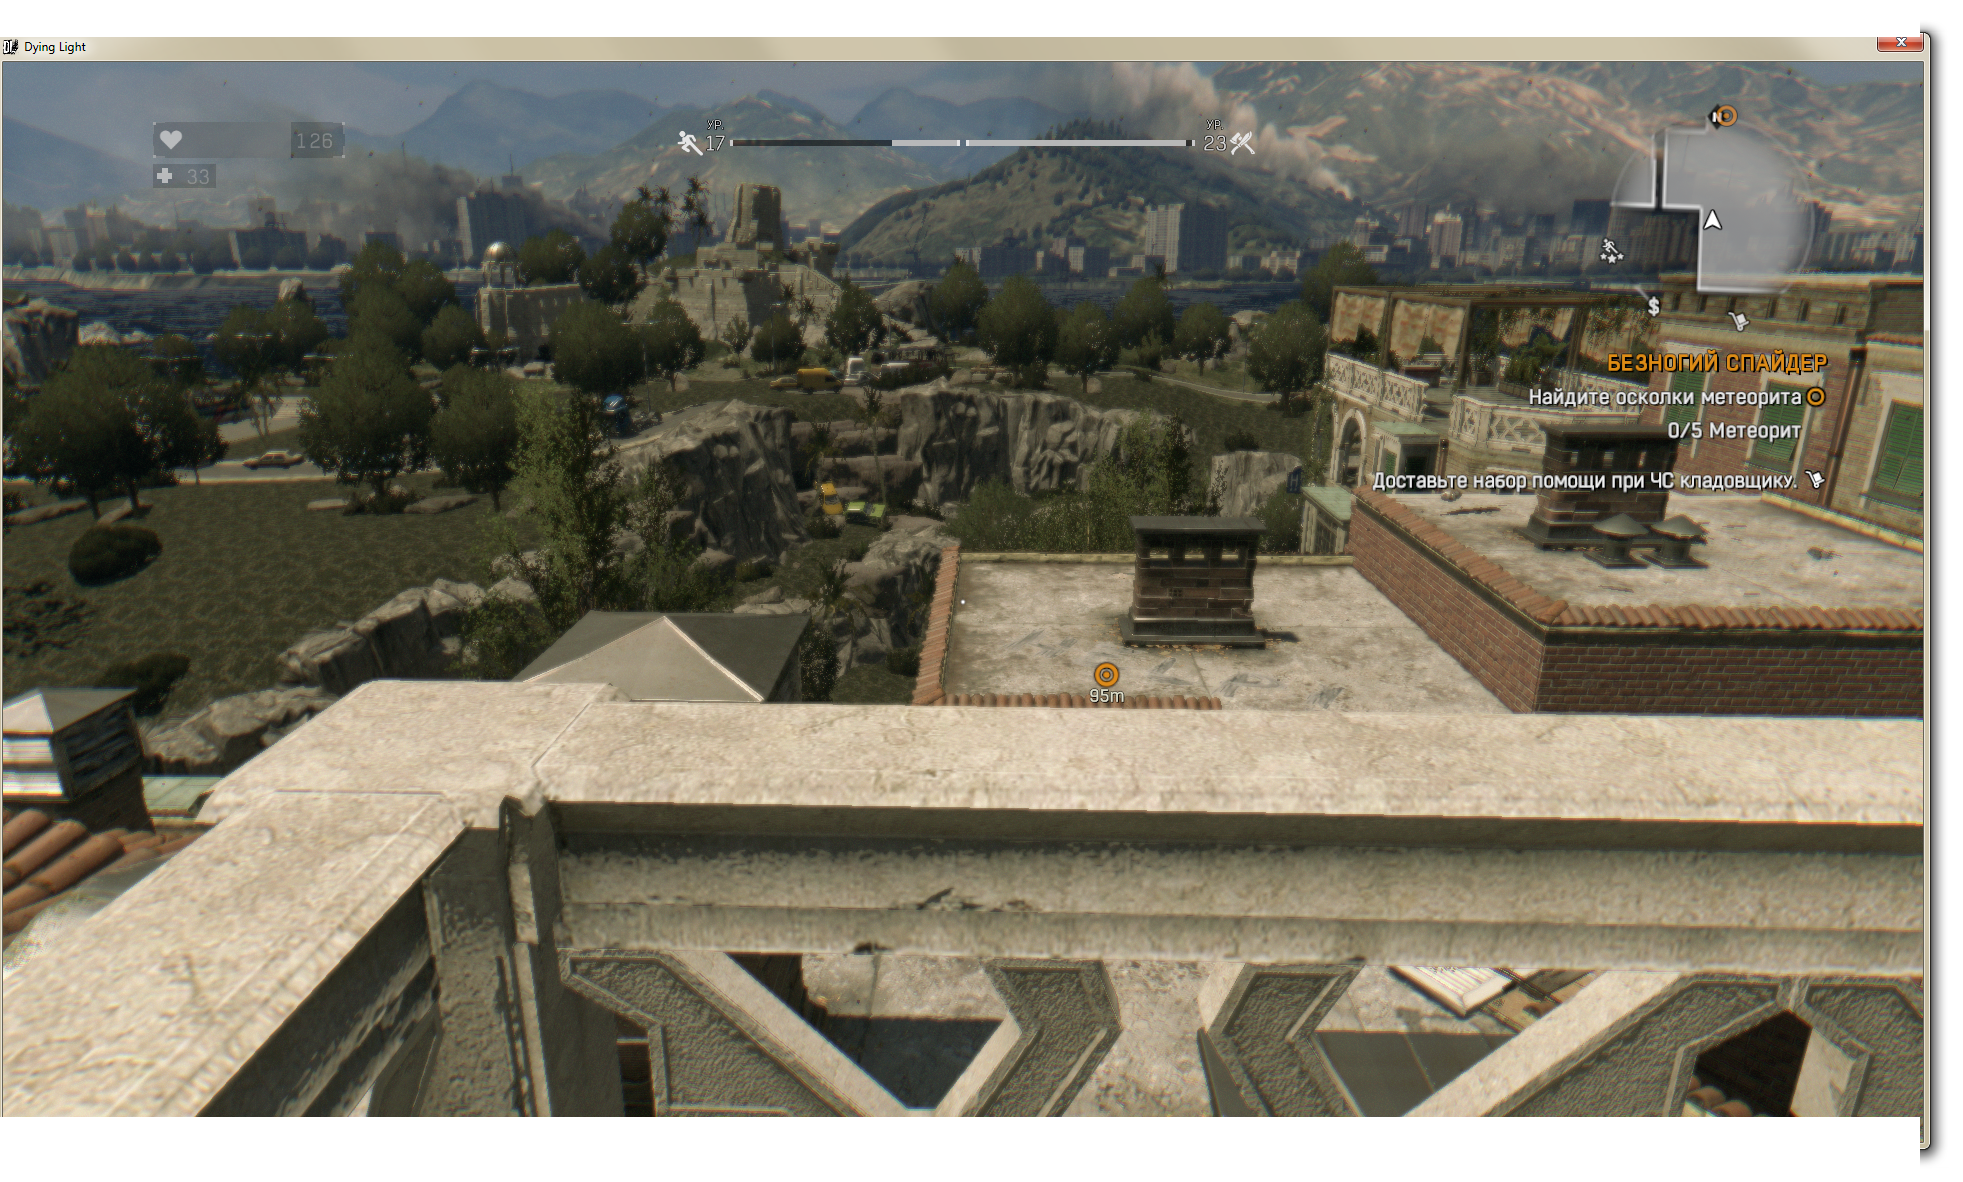 2015-02-05 14-11-37 Dying Light (inactive)